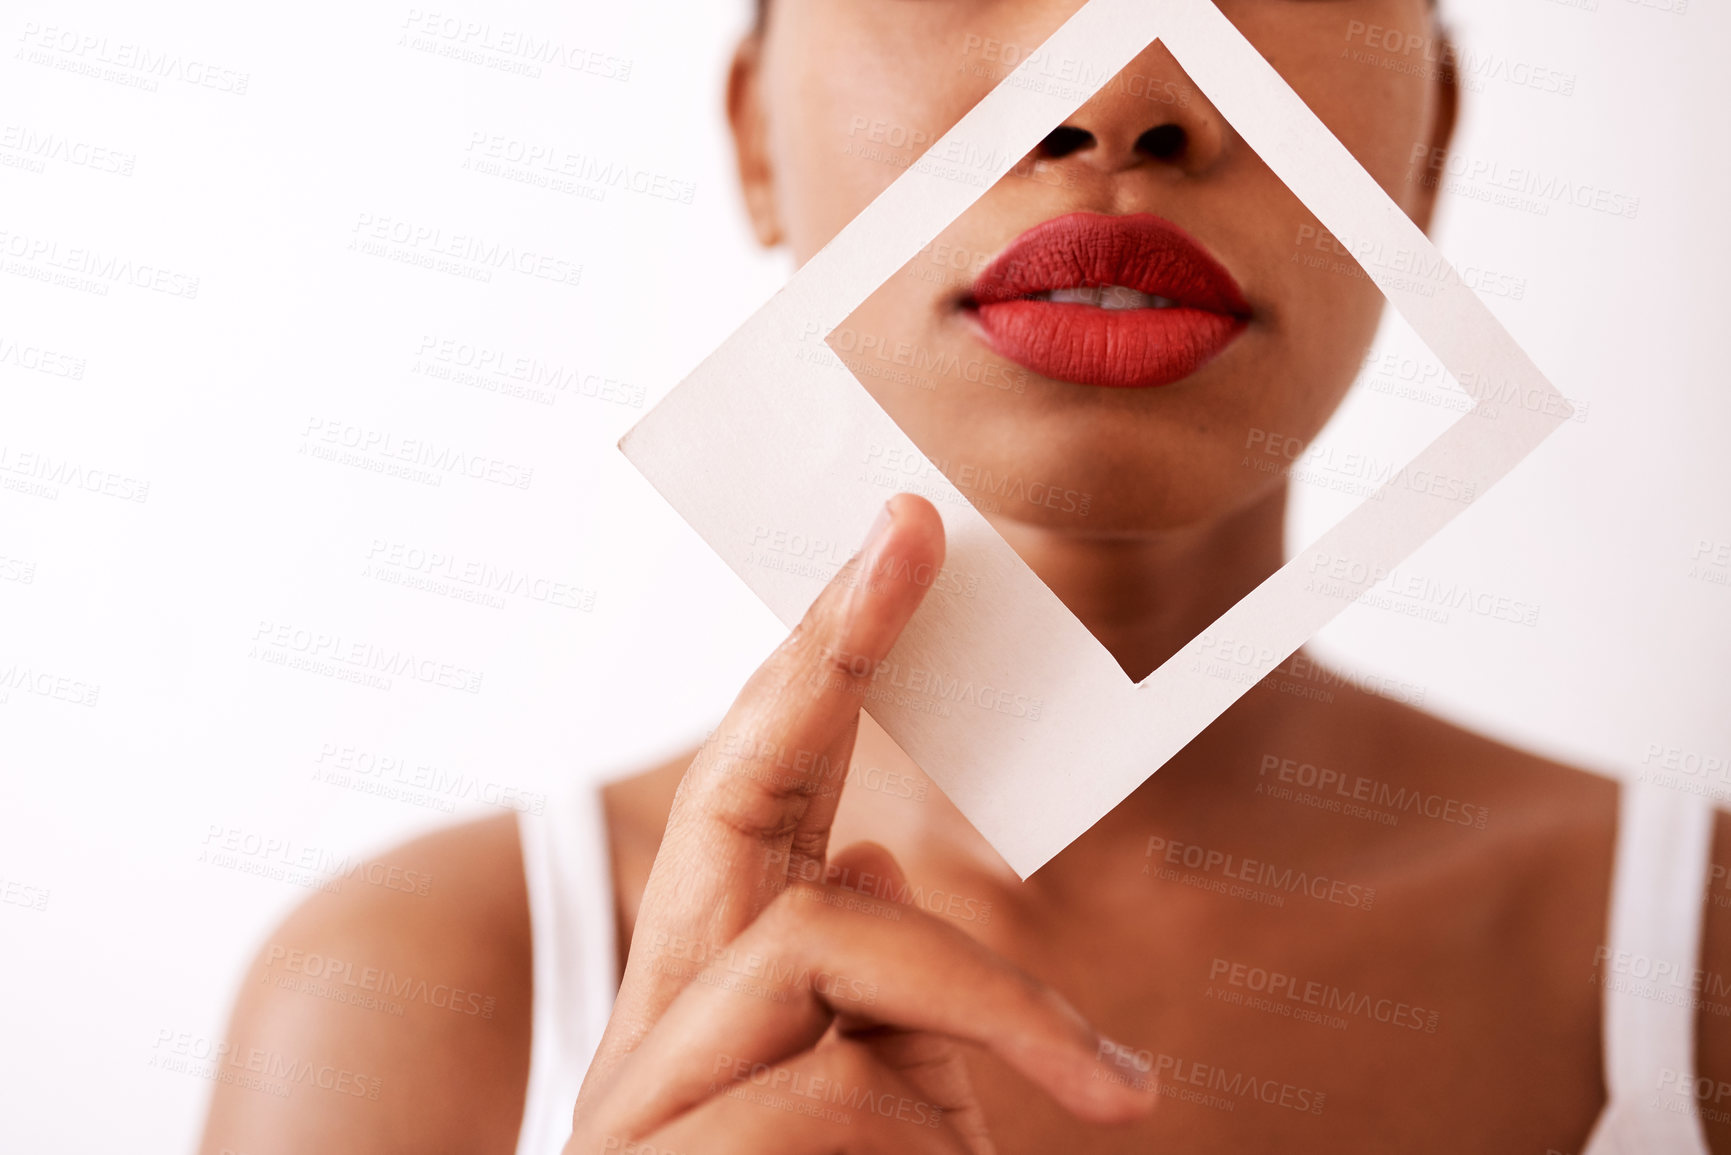 Buy stock photo Studio shot of an unrecognizable woman holding a frame over her red lips